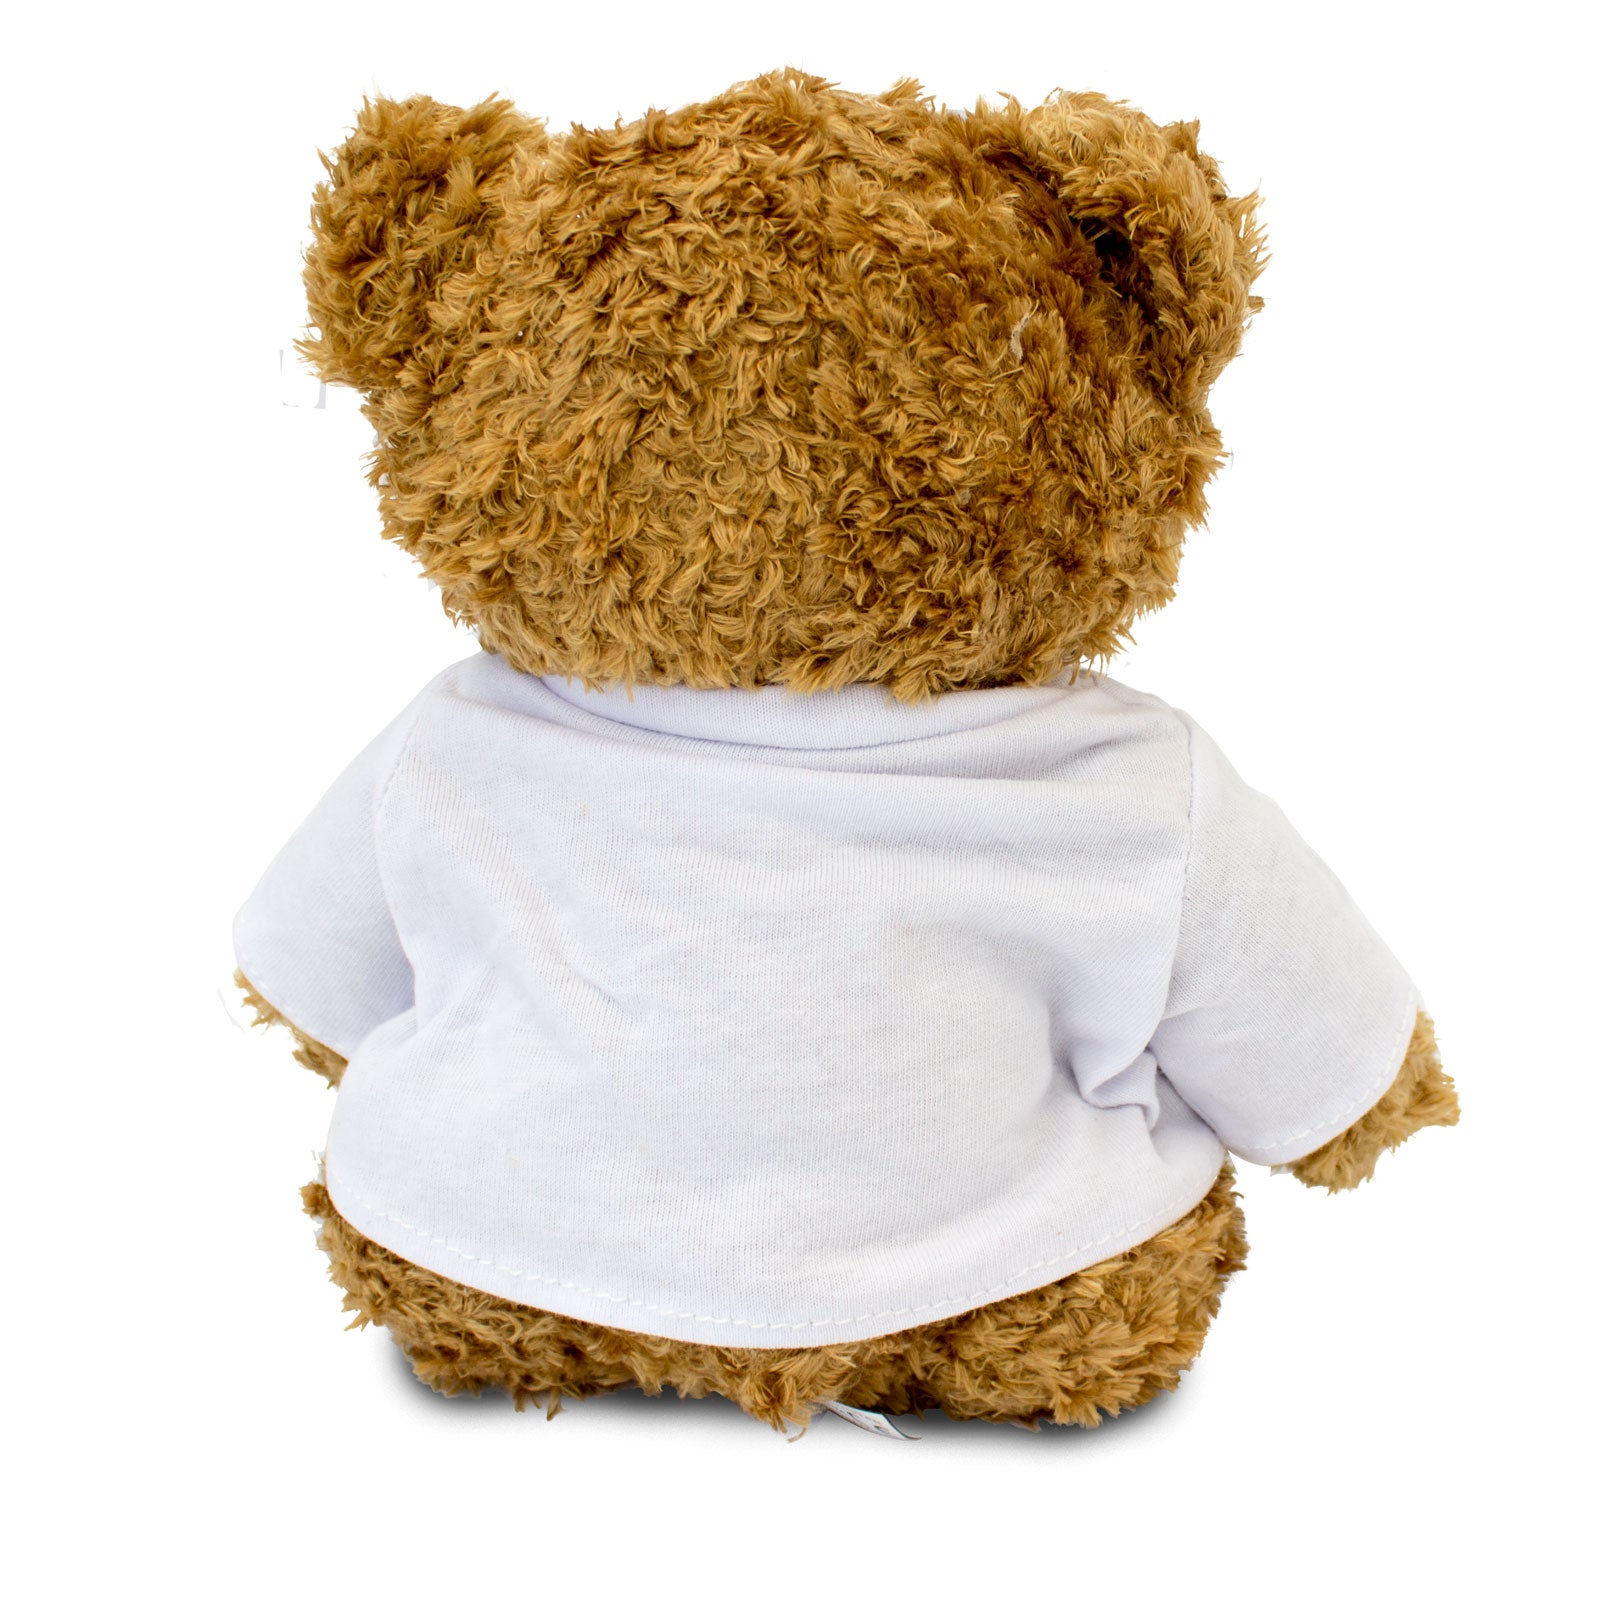 Get Well Soon Anette - Teddy Bear